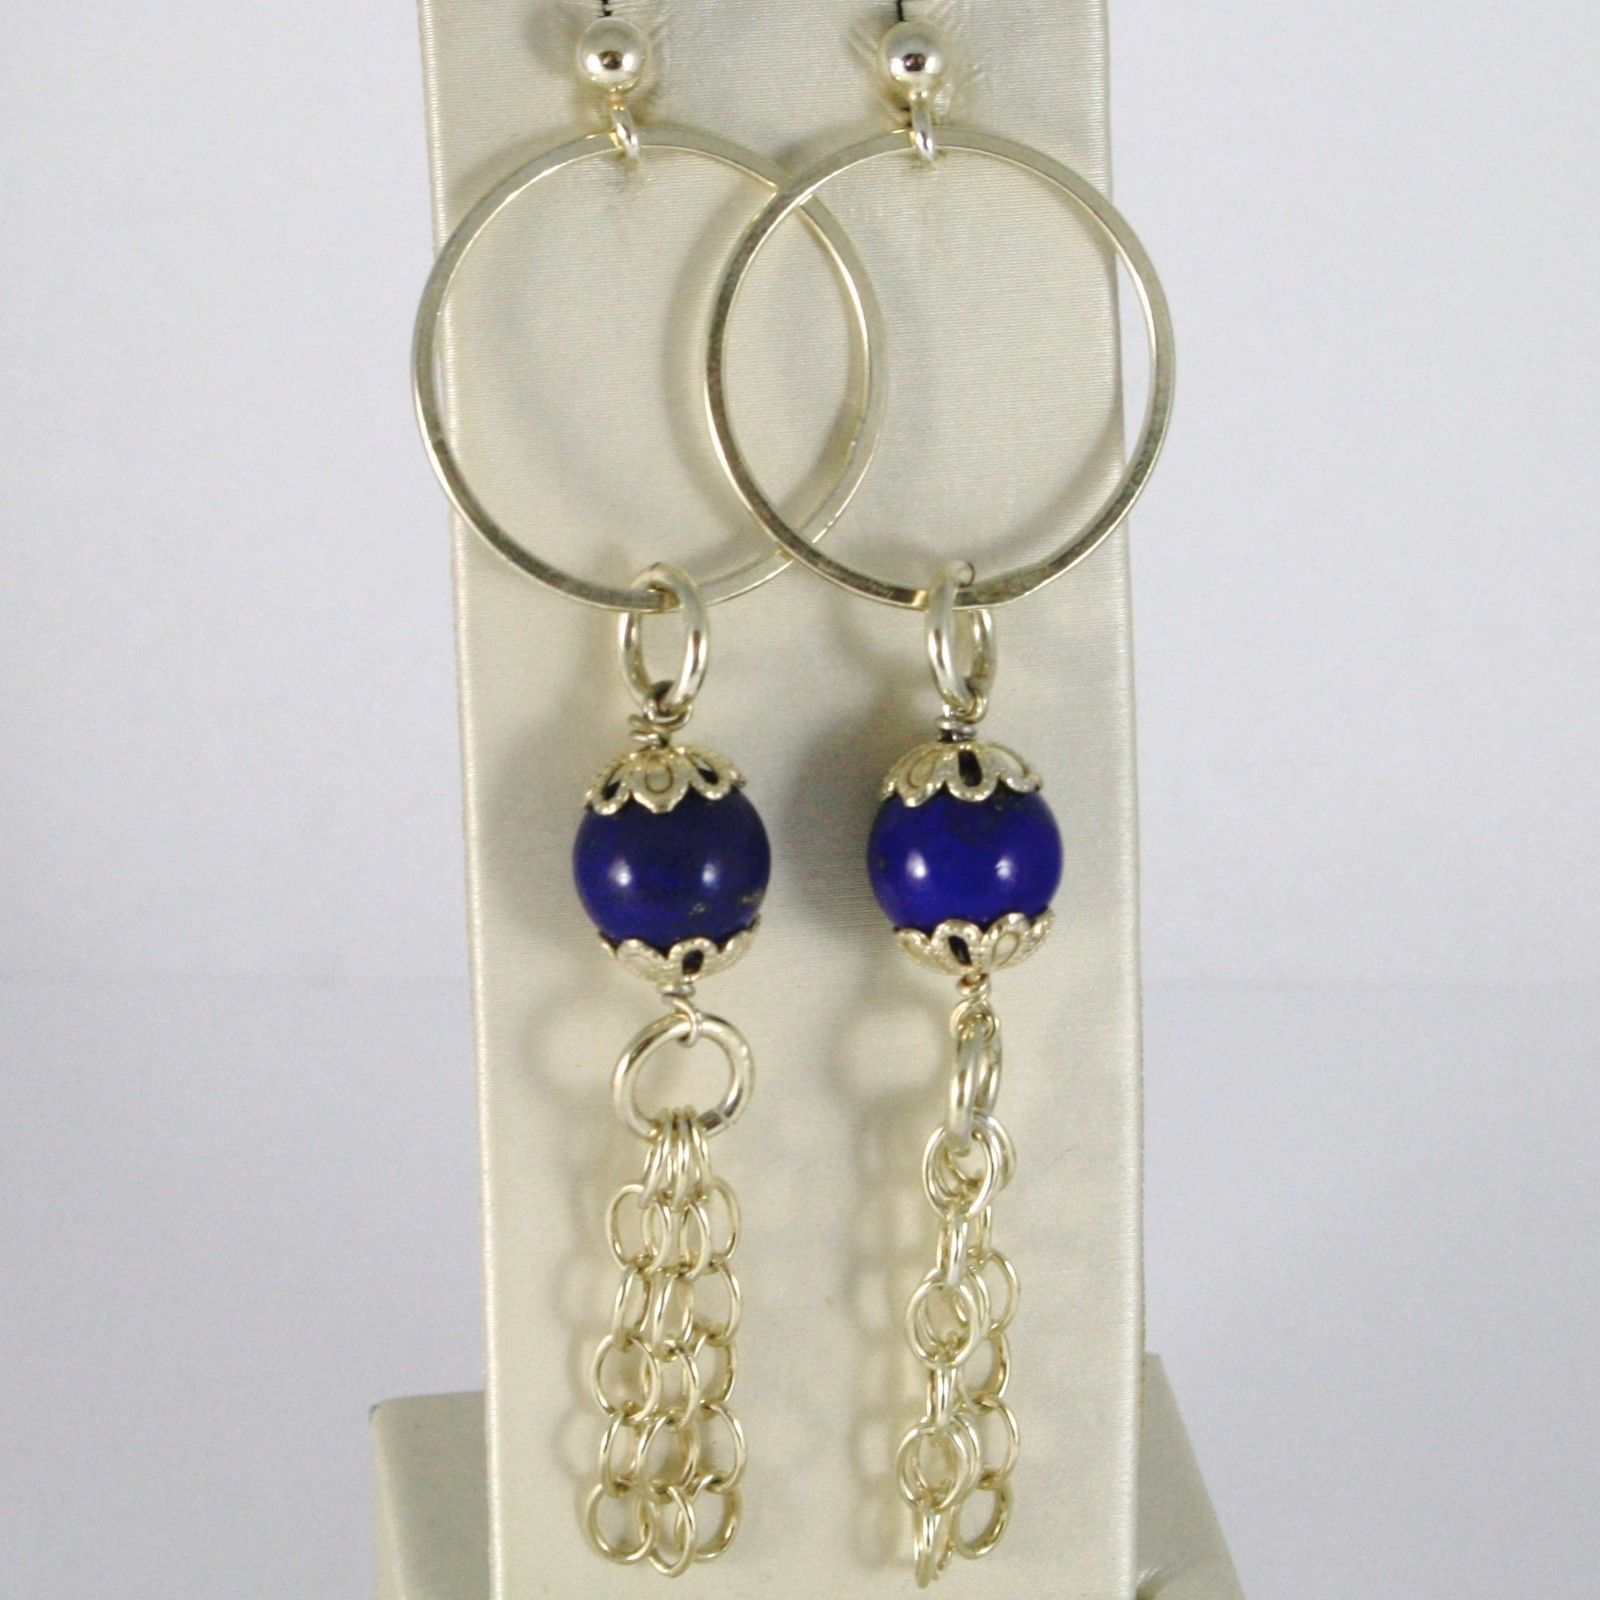 EARRINGS SILVER 925 LAMINATED GOLD HANGING WITH LAPIS LAZULI PENCILS BLUE